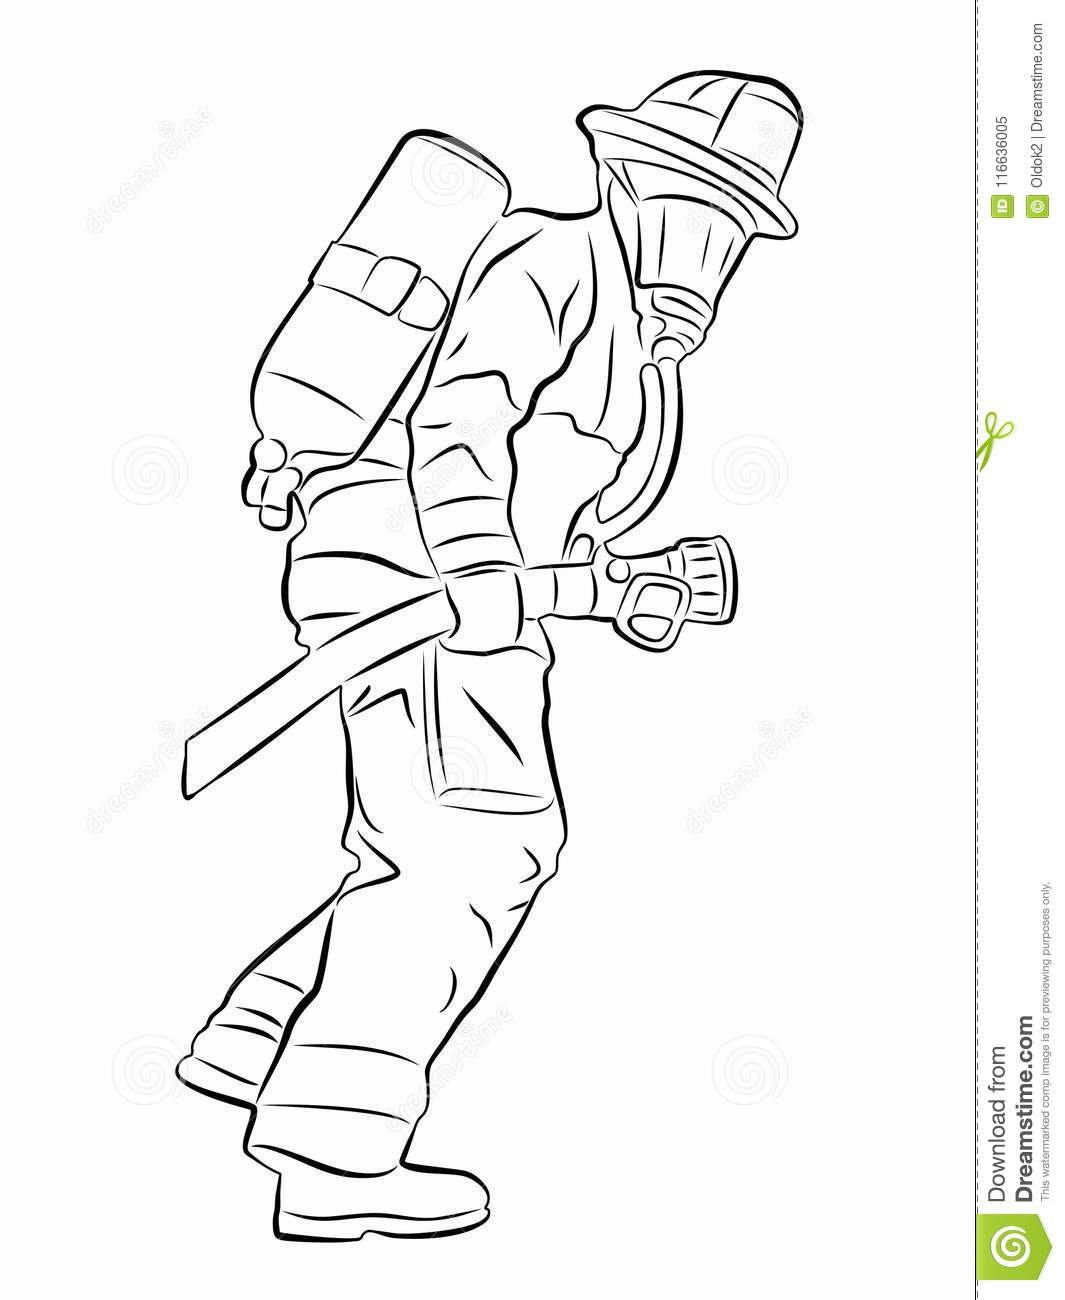 Silhouette Of A Fireman Vector Draw Stock Vector